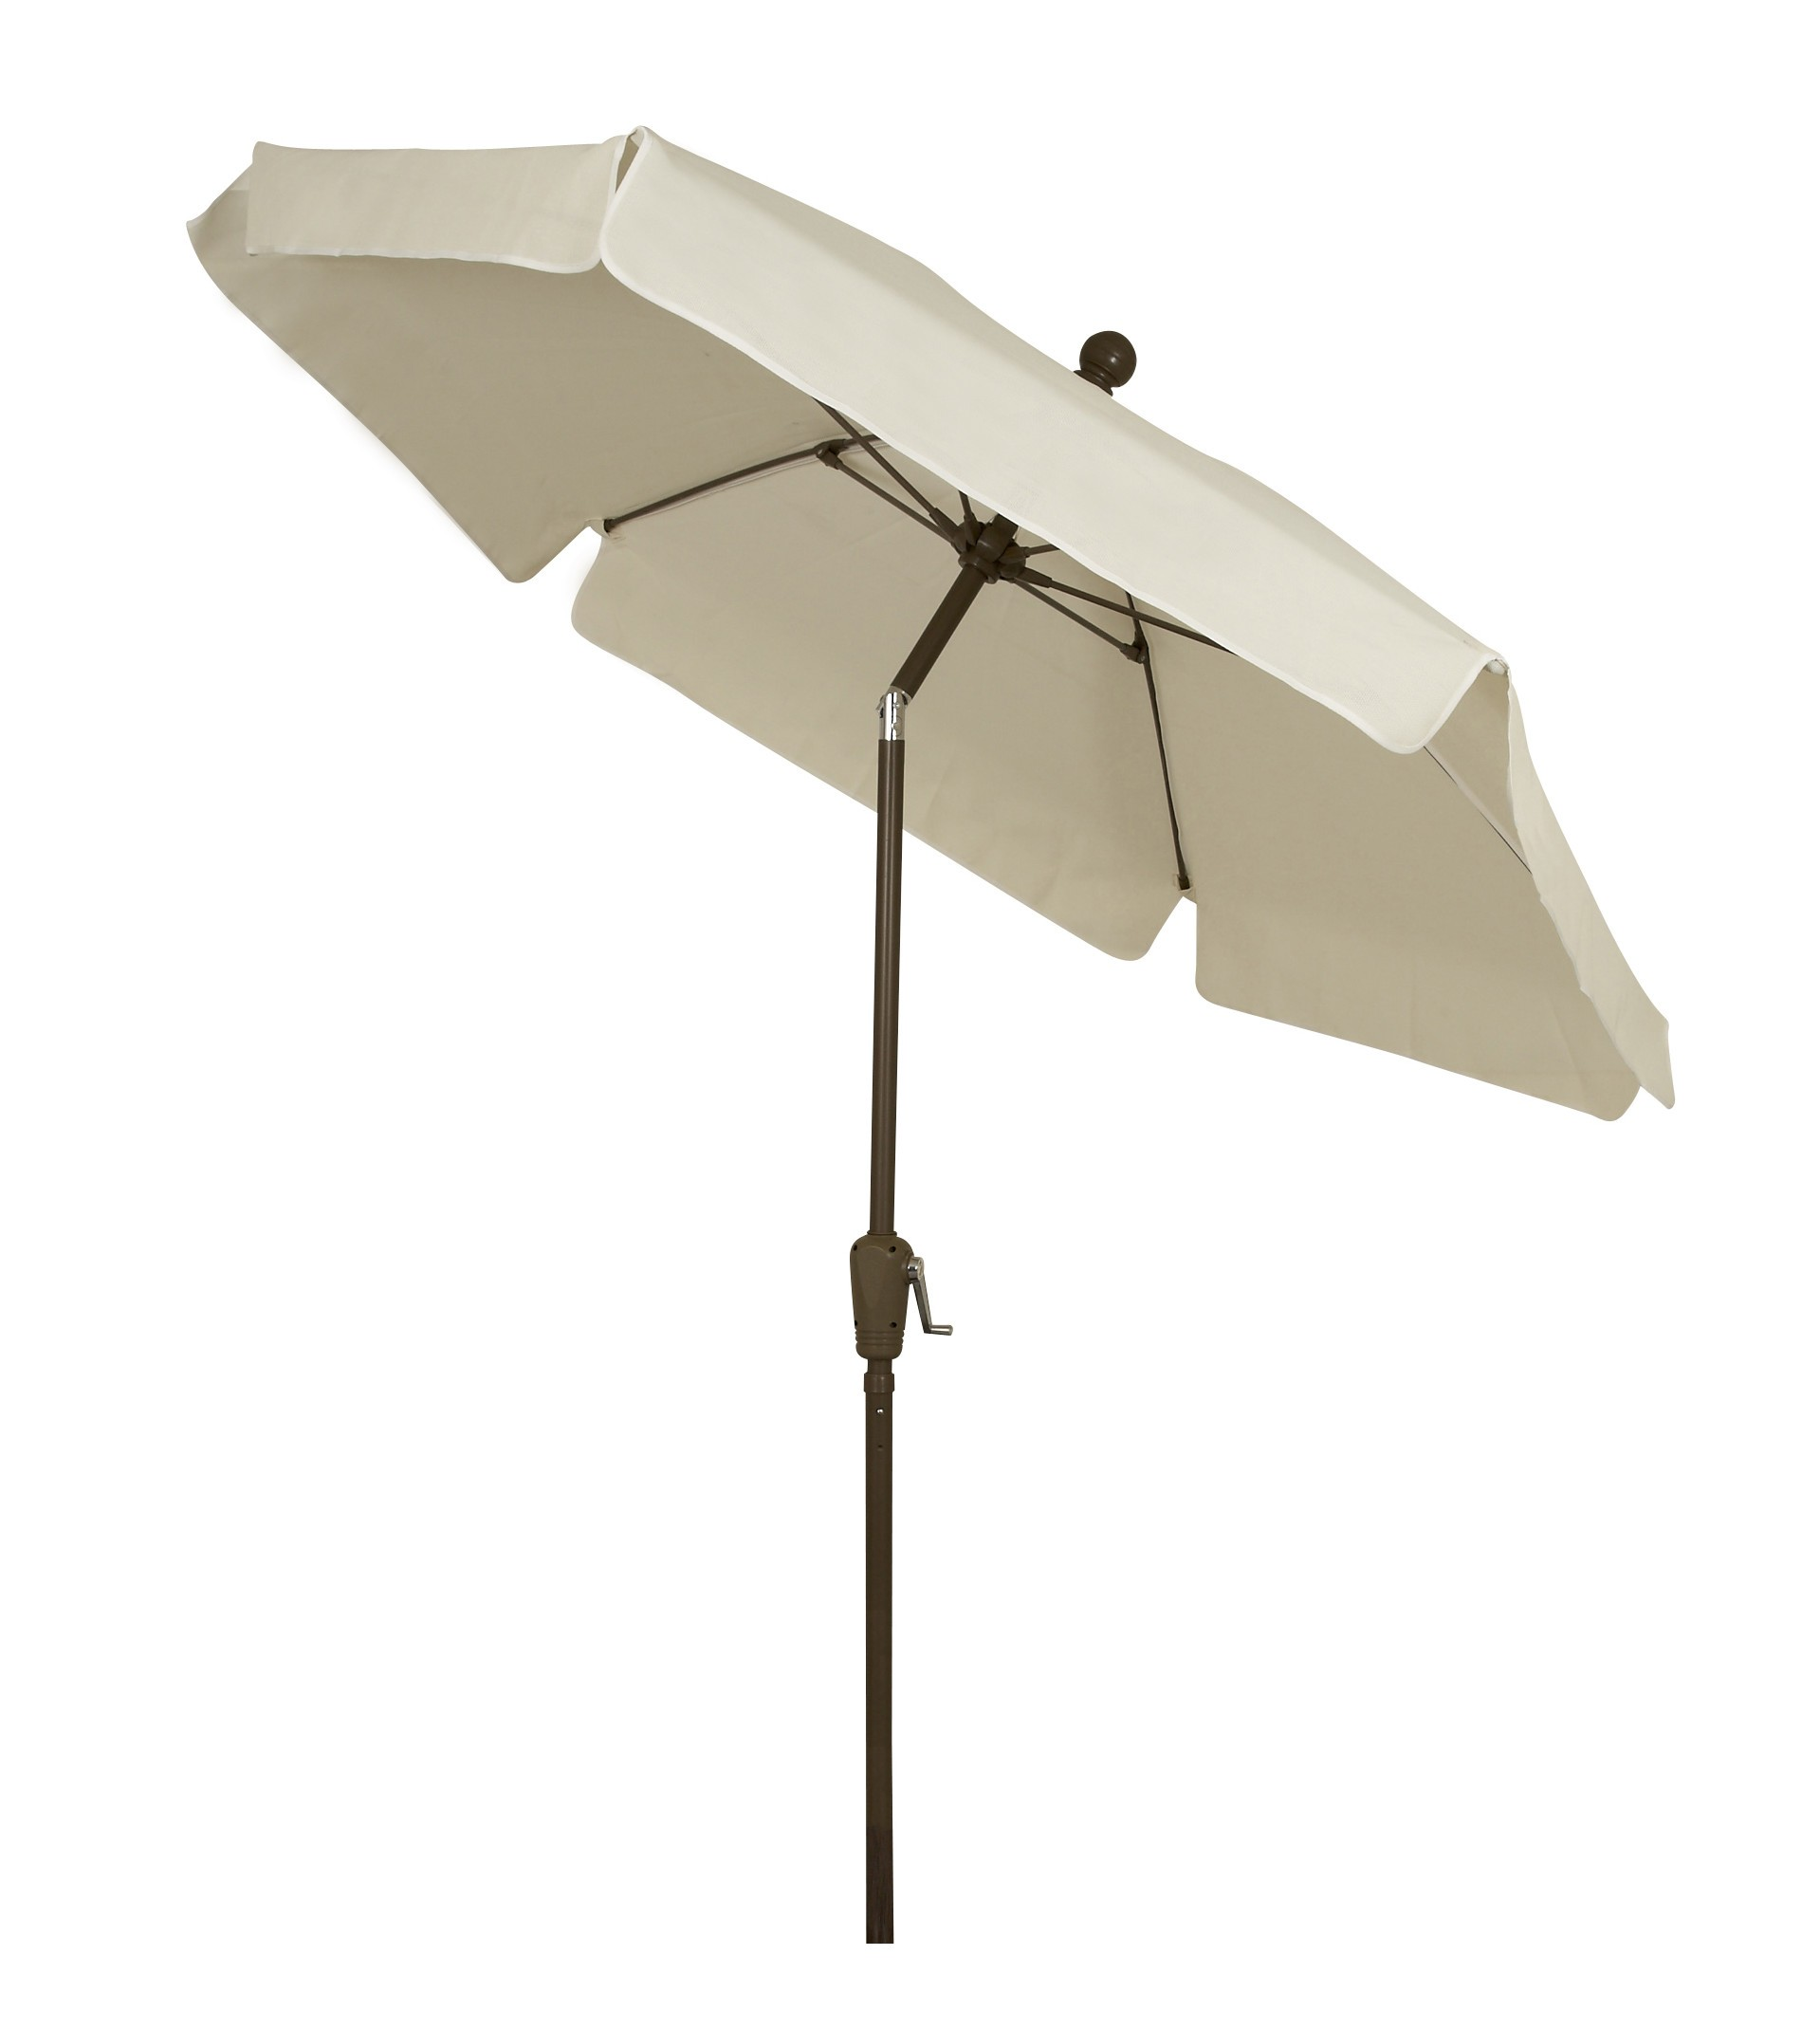 ft grade sunbrella commercial garden living product market wood hayneedle cfm umbrella belham